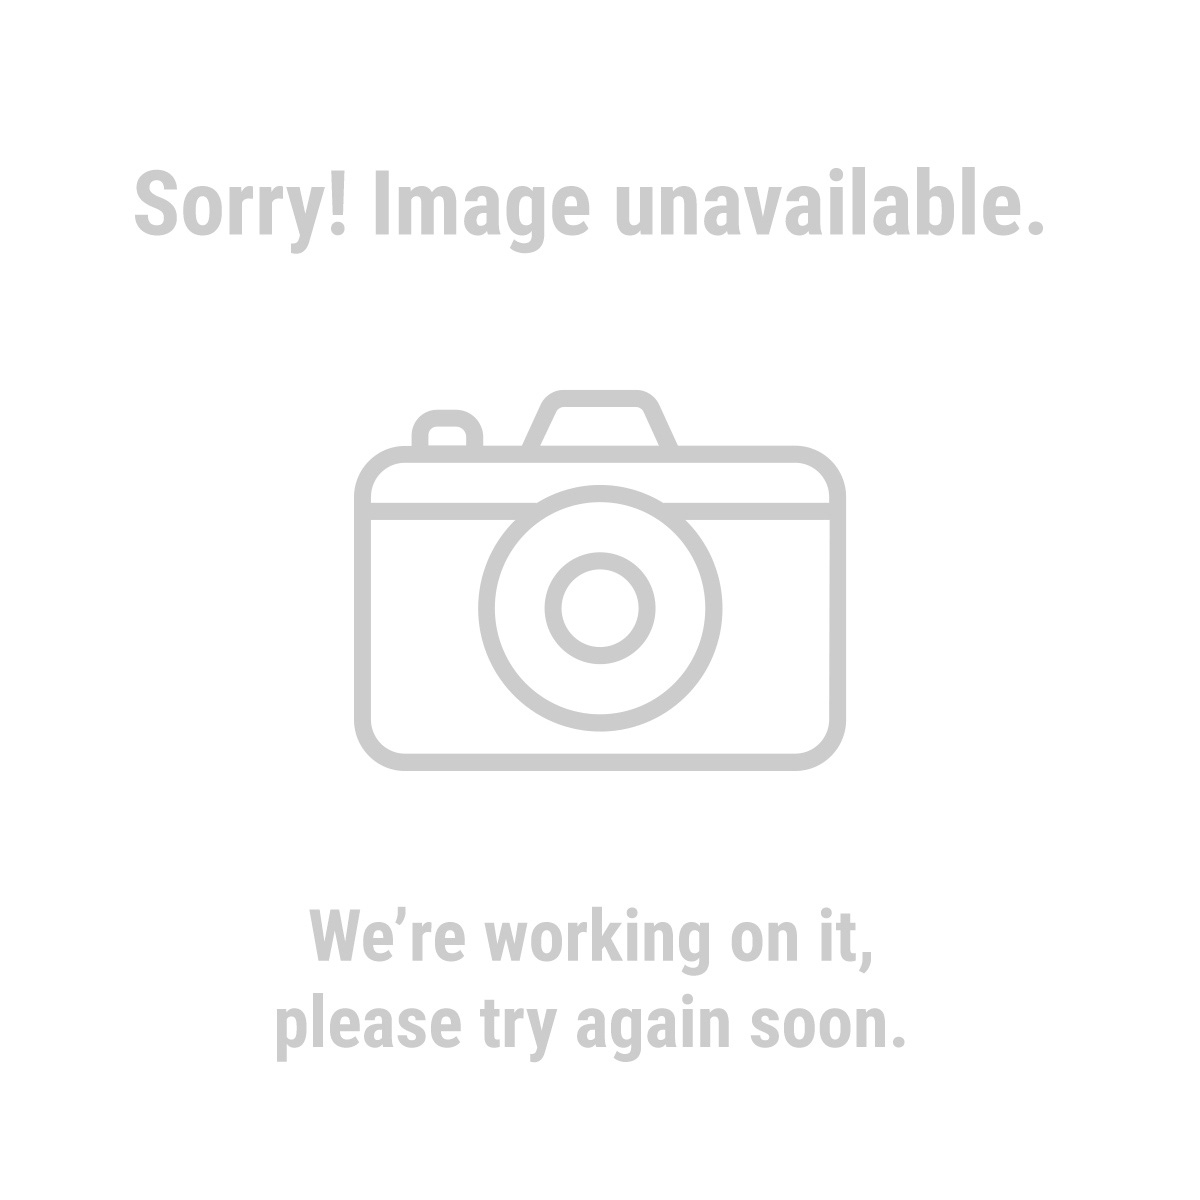 Central Pneumatic 95275 Pancake Air Compressor, Oilless 1/3 Horsepower, 3 Gallon, 100 PSI